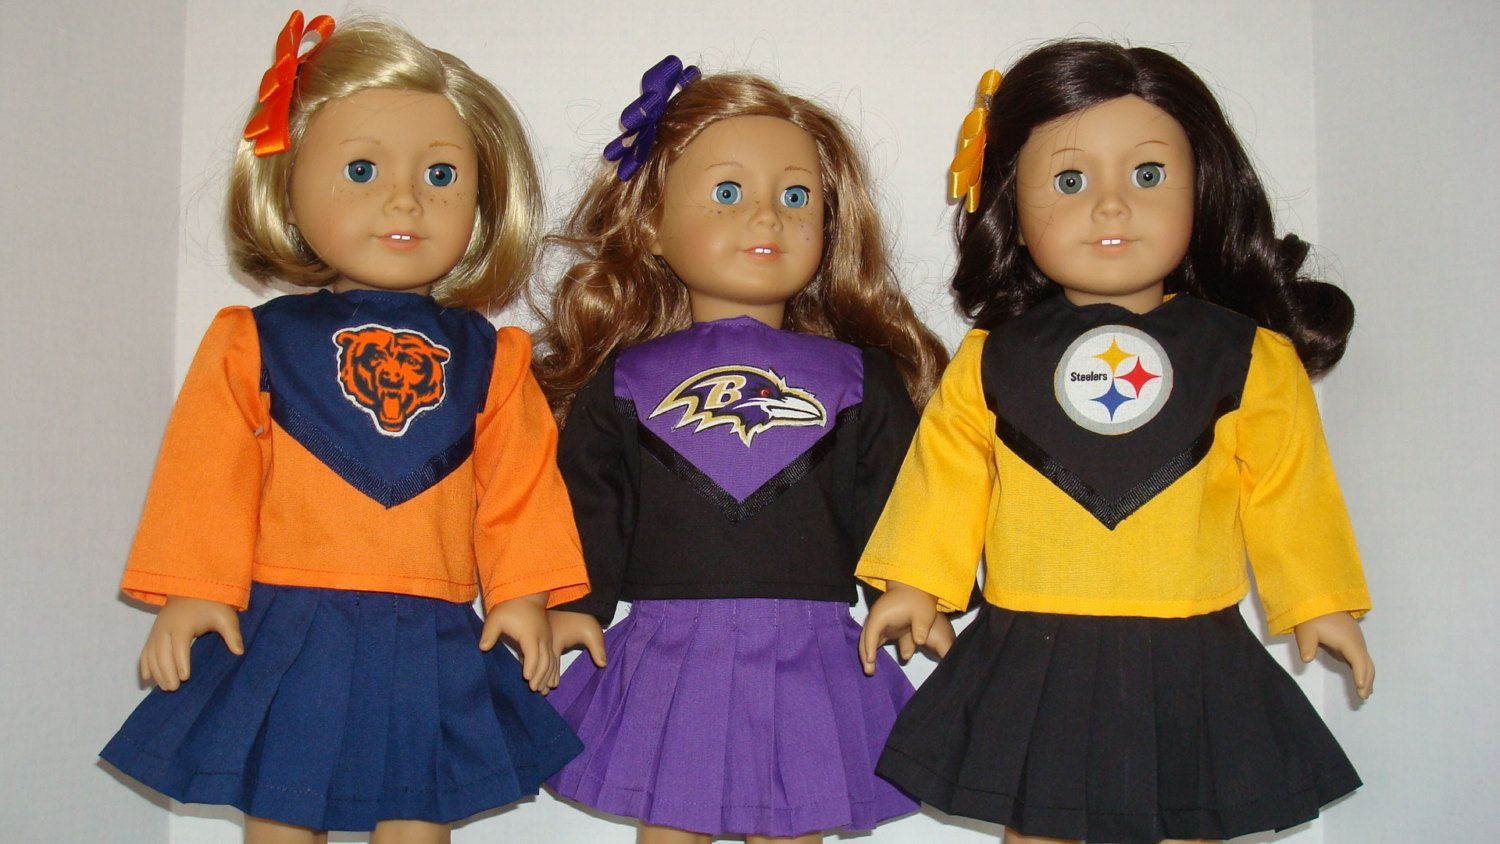 American Girl Doll Clothes/Chicago Bears/Baltimore Ravens/Pittsburgh Steelers/Cheerleader outfit 18 inch American Girl Doll/READY TO SHIP #18inchcheerleaderclothes